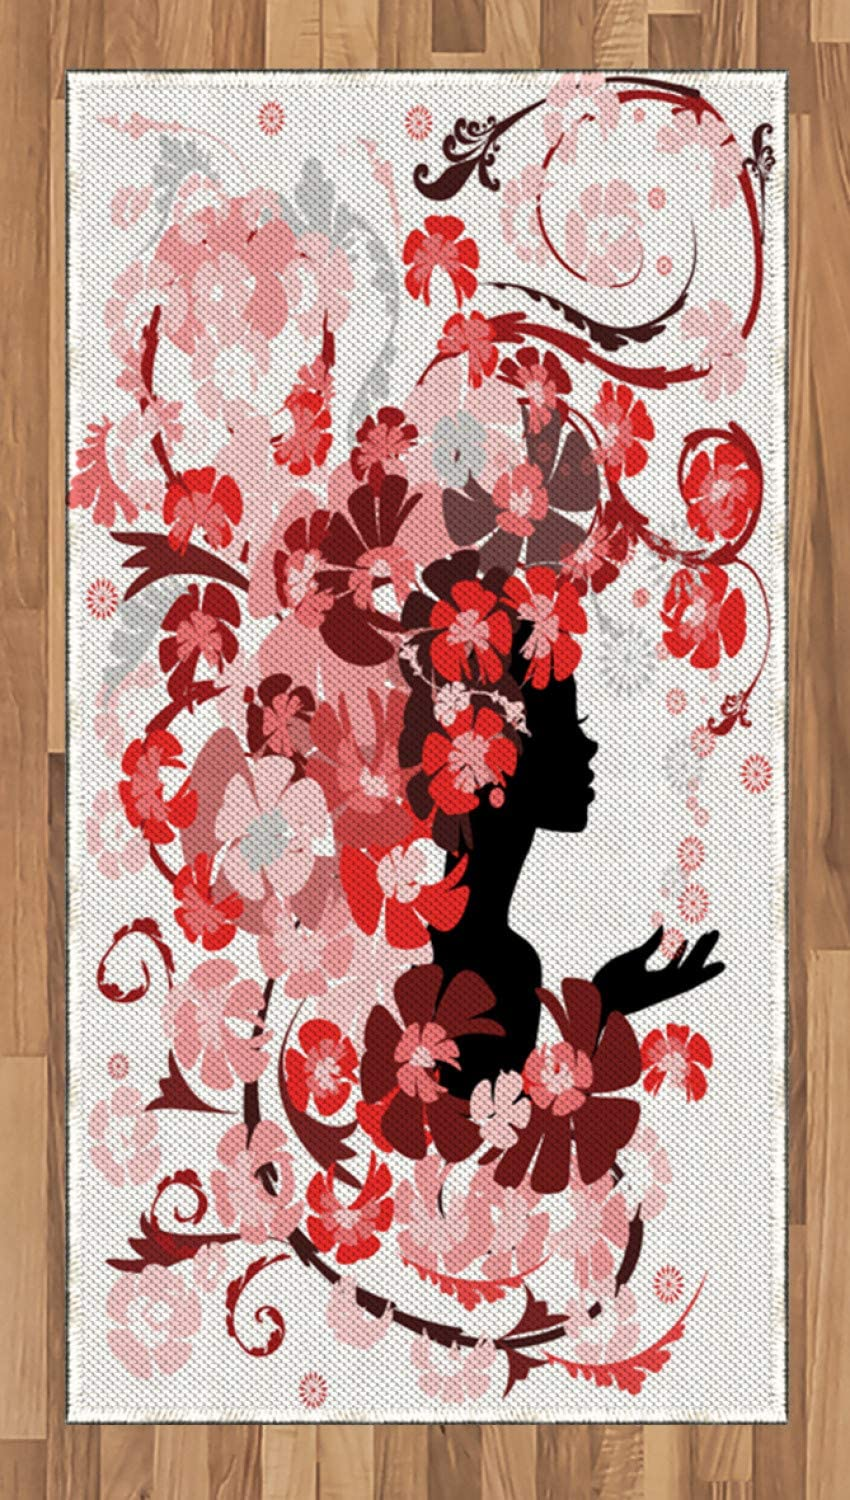 Ambesonne Femimine Area Rug, Flower Girl Hair Long Swirling Pink Blossoms Hair Dressers Beauty Feminine, Flat Woven Accent Rug for Living Room Bedroom Dining Room, 2.6' x 5', Black Pink and Red